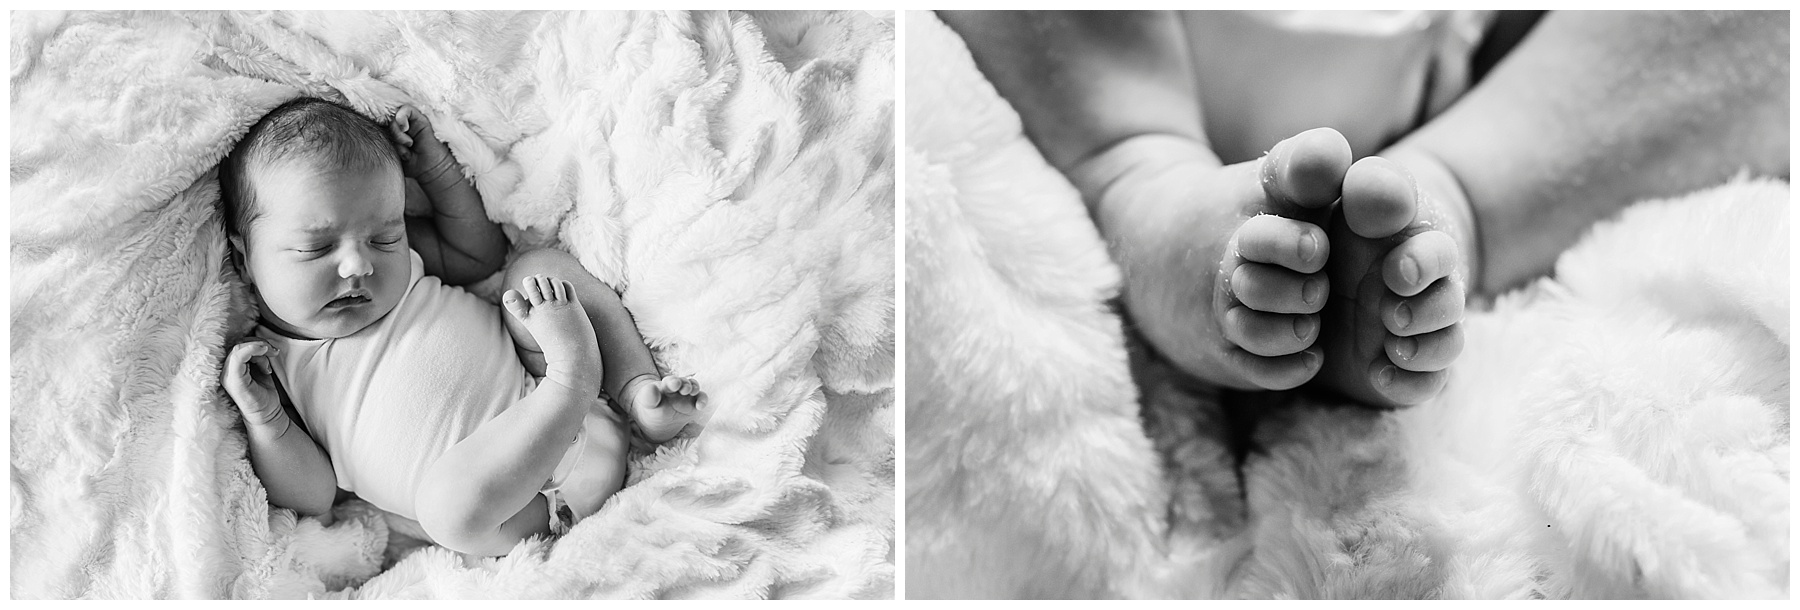 melbourne newborn photographer (19).jpg